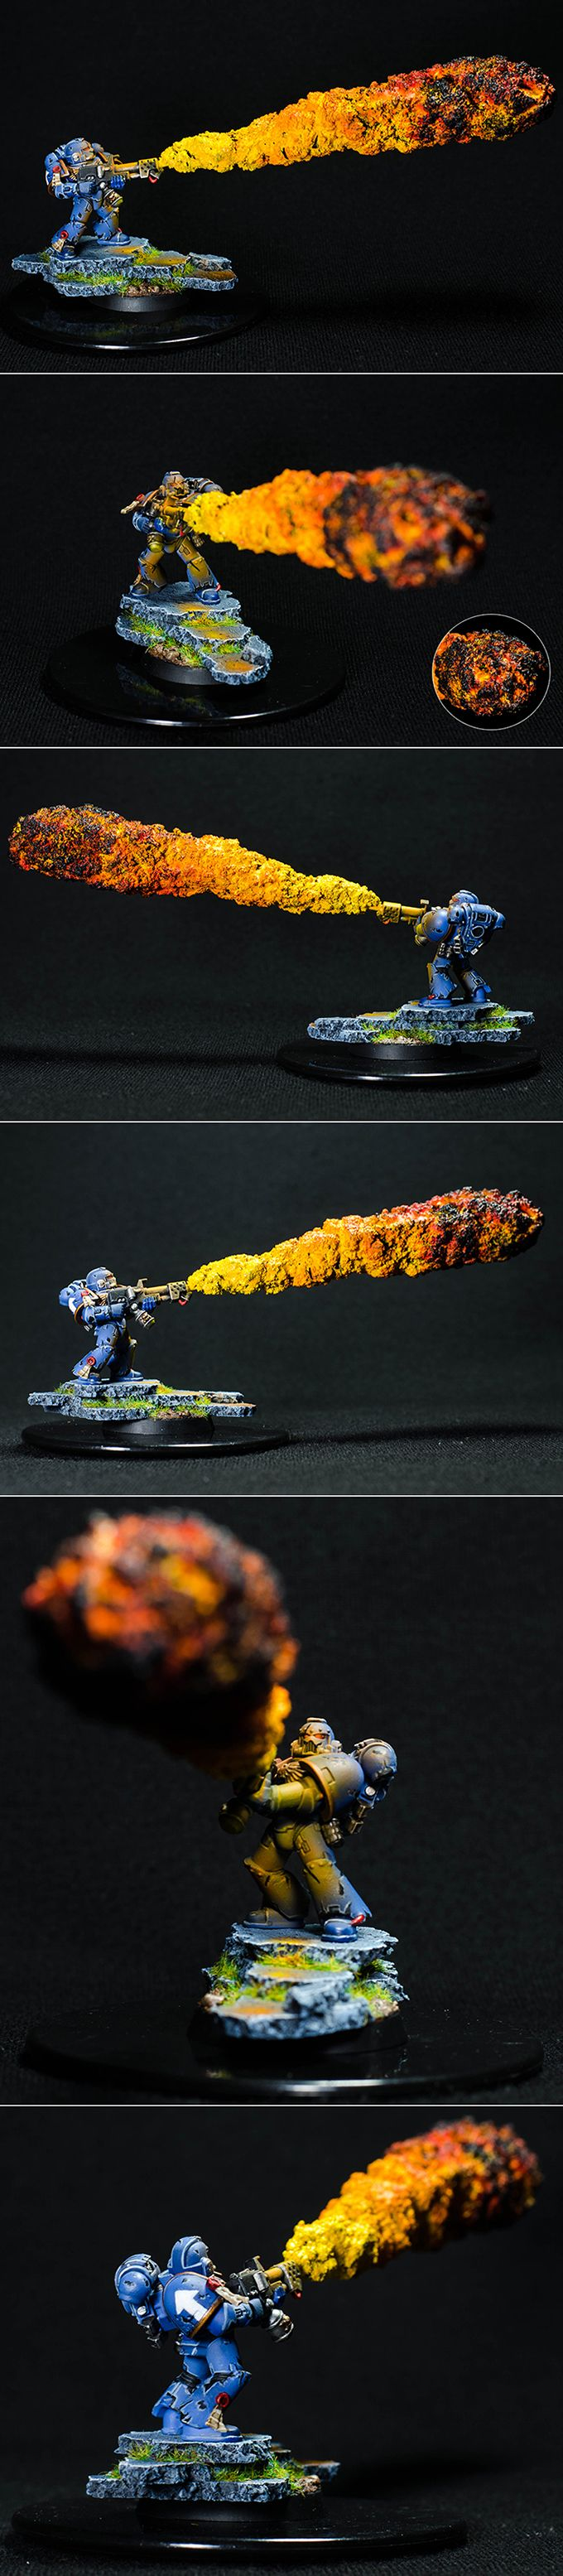 40k - Ultramarine's Flamethrower by vdaiev